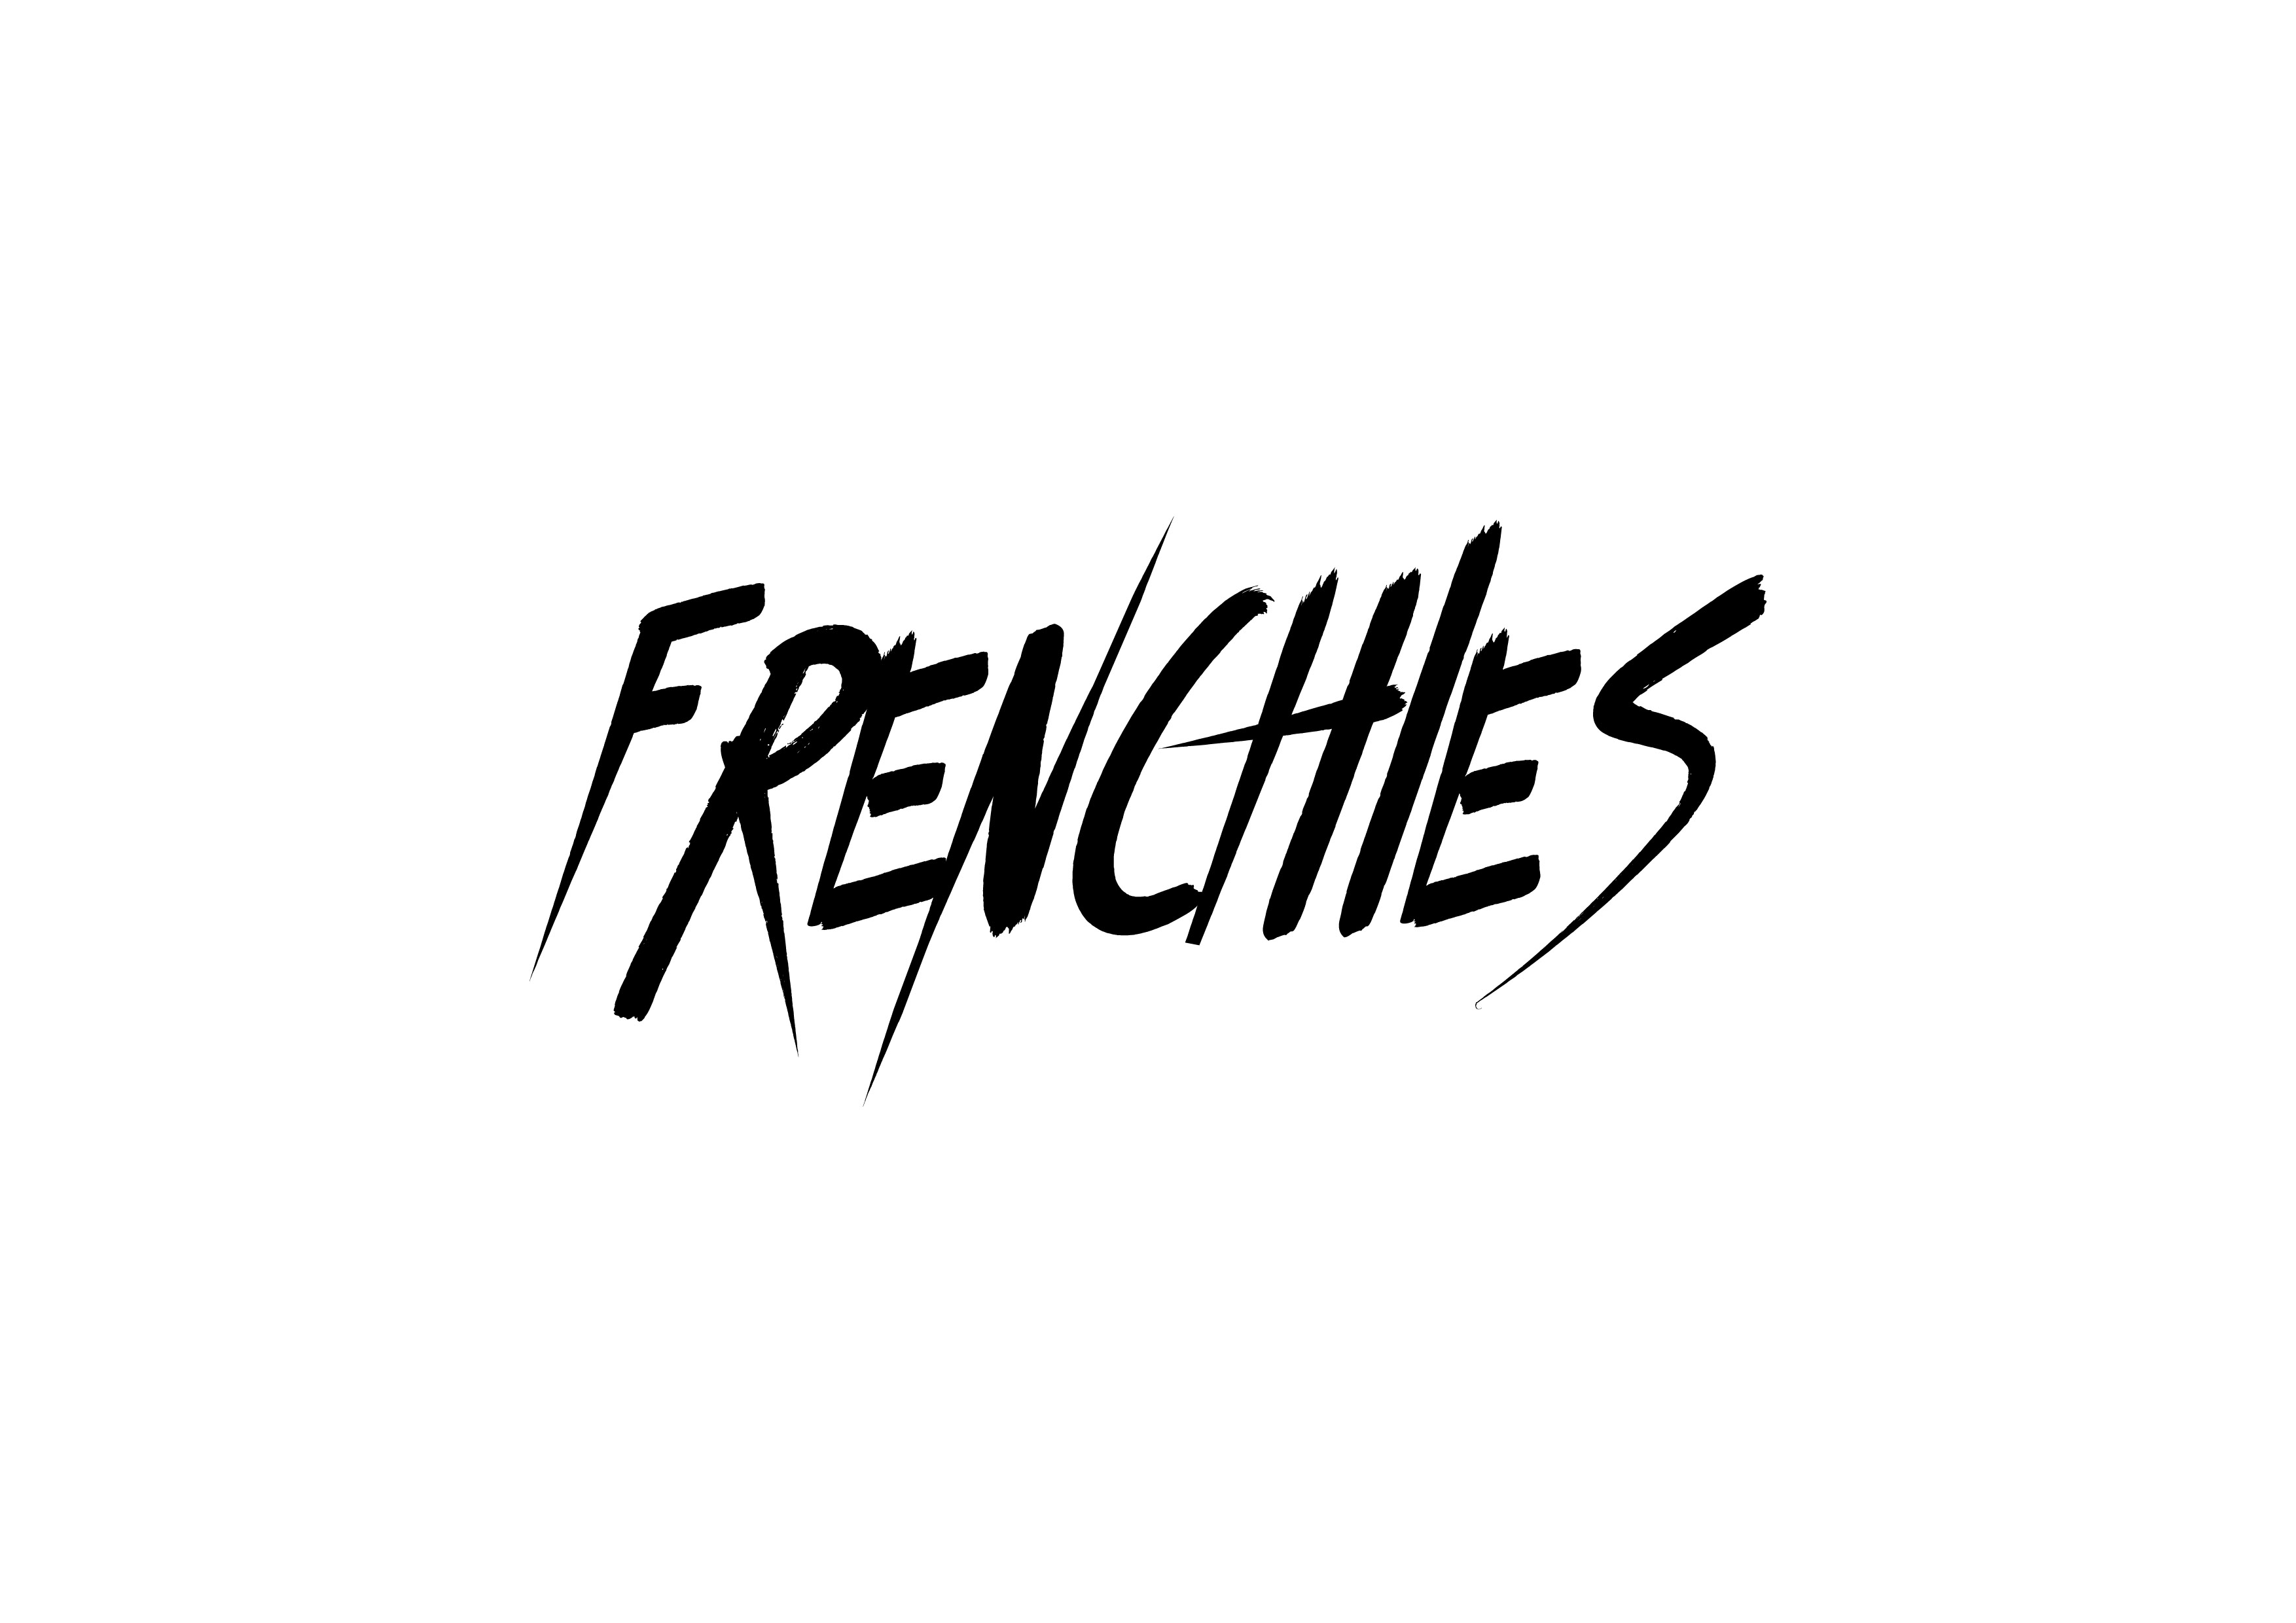 01-FRENCHIES-NOIR